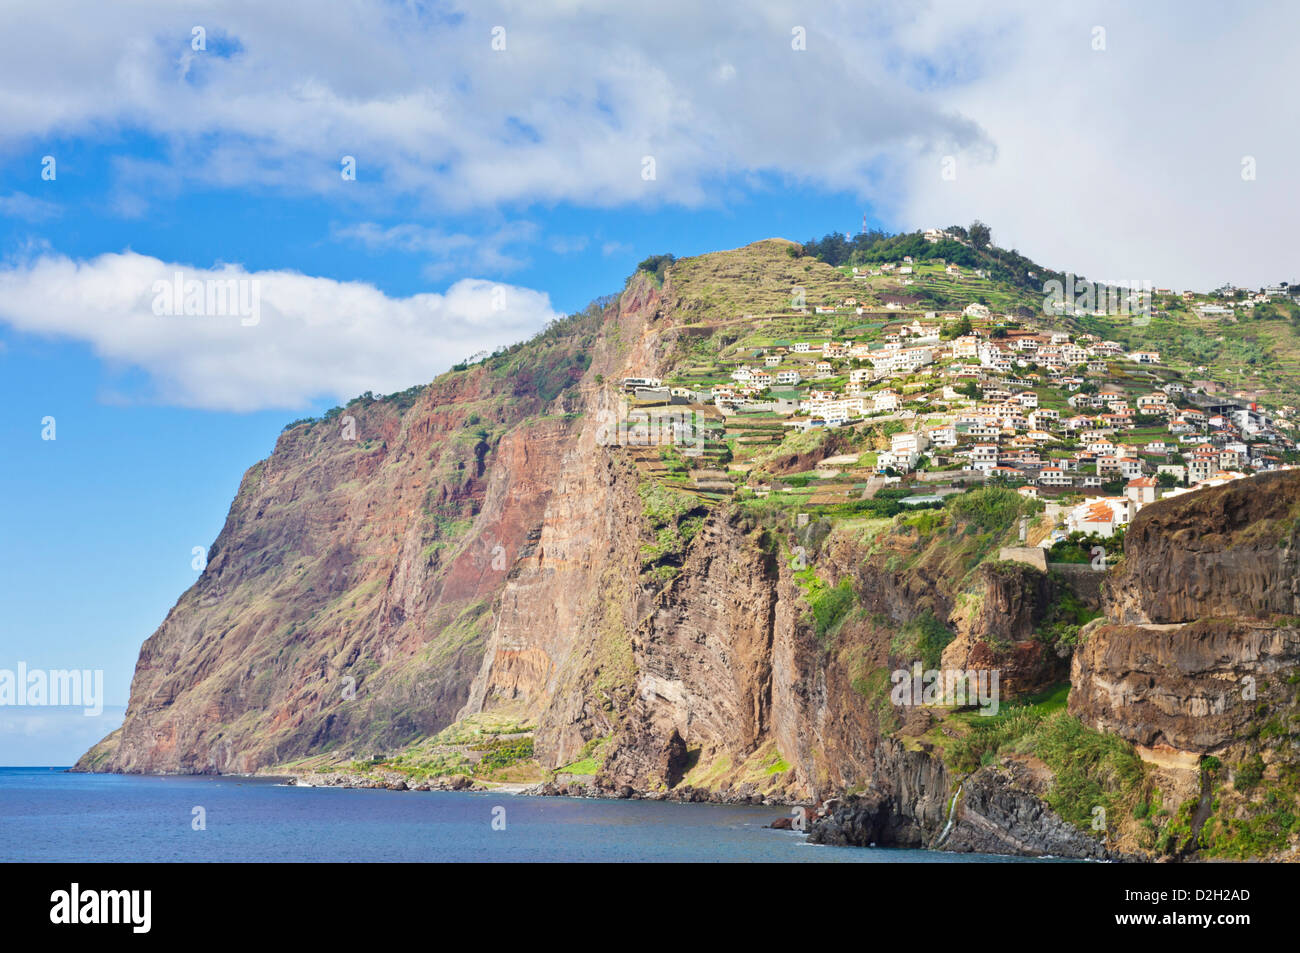 Cabo Girao, (580m) is one of the world's highest sea cliffs on the south coast of the island of Madeira, Portugal, - Stock Image